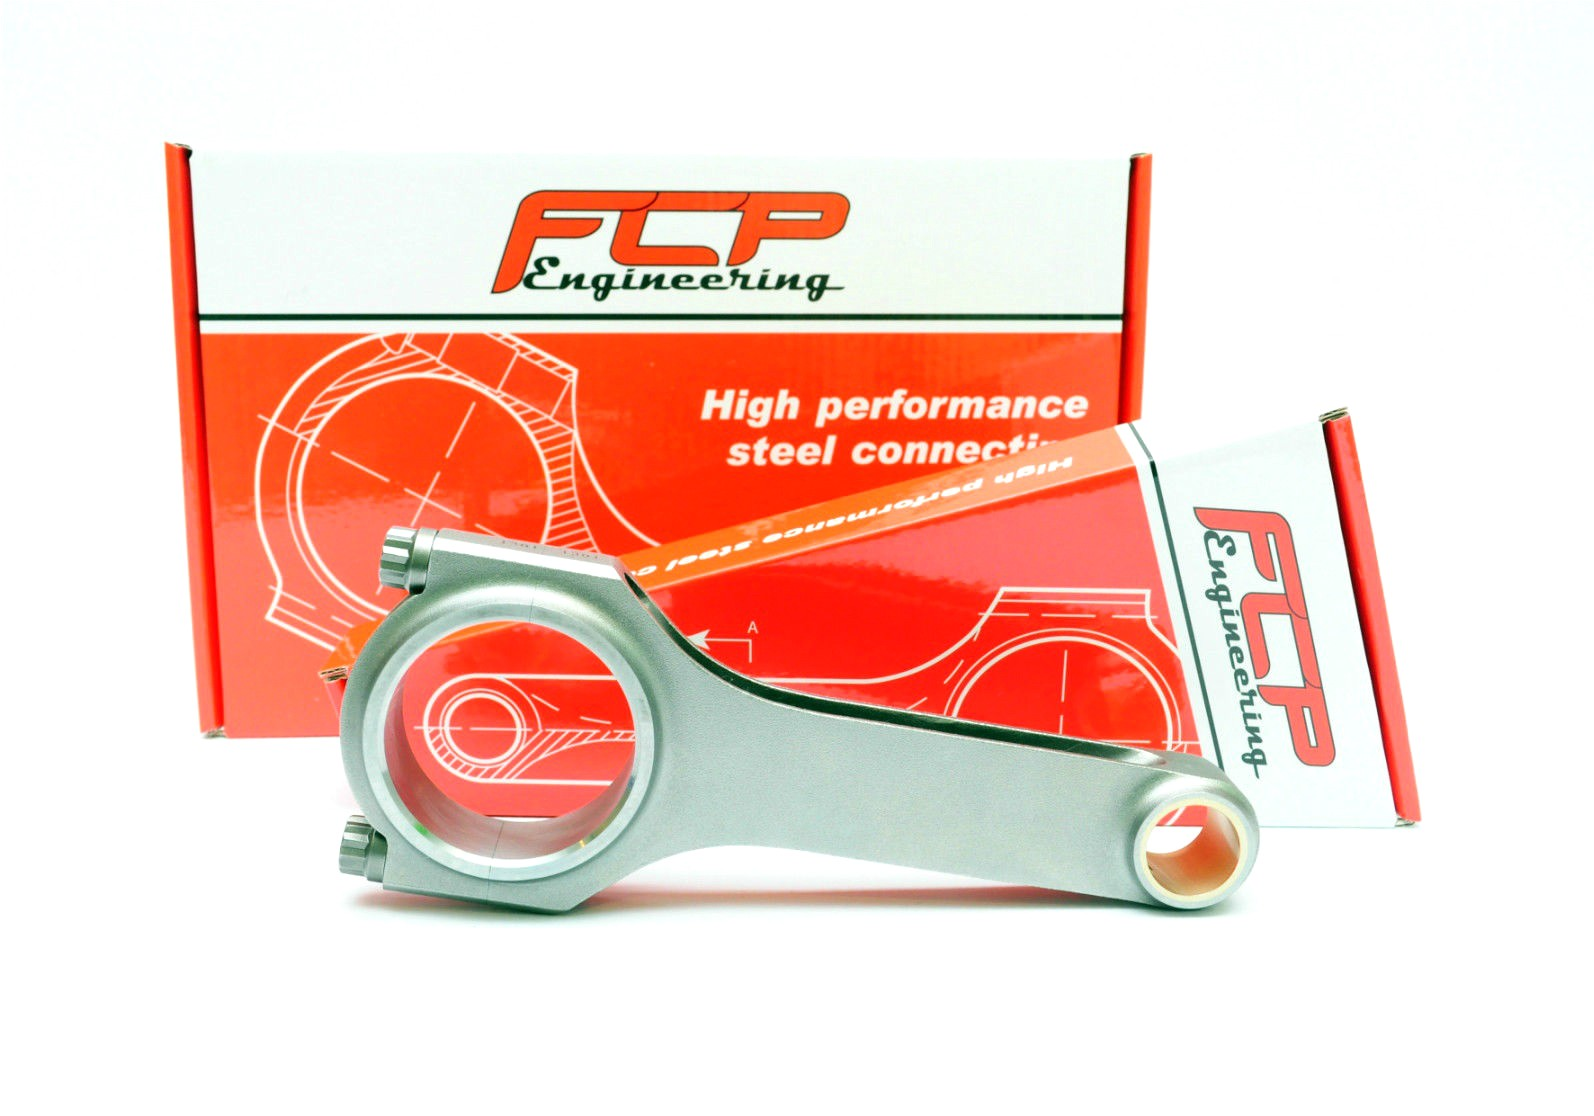 BMW M5 E39 5.0 V8 S62B50 FCP H-beam steel connecting rods 141.5mm